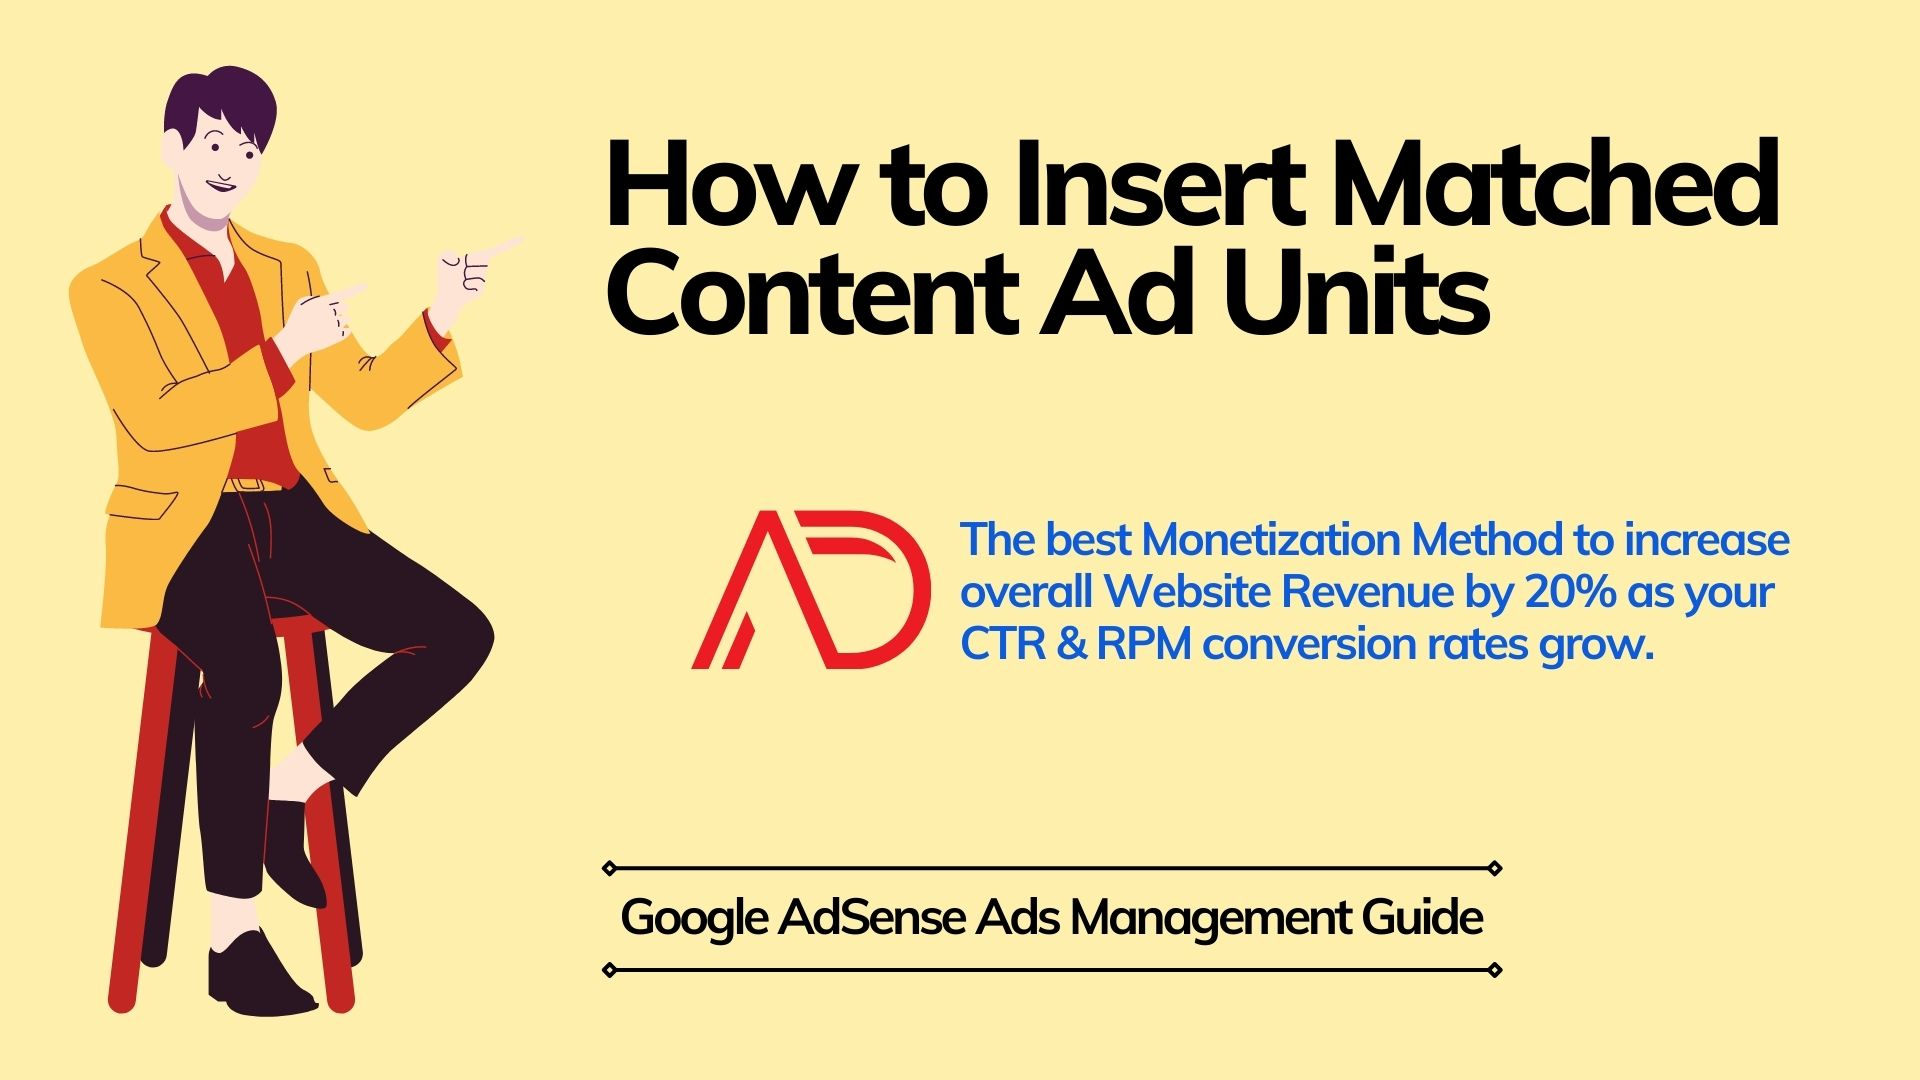 Matched Content Ad Units